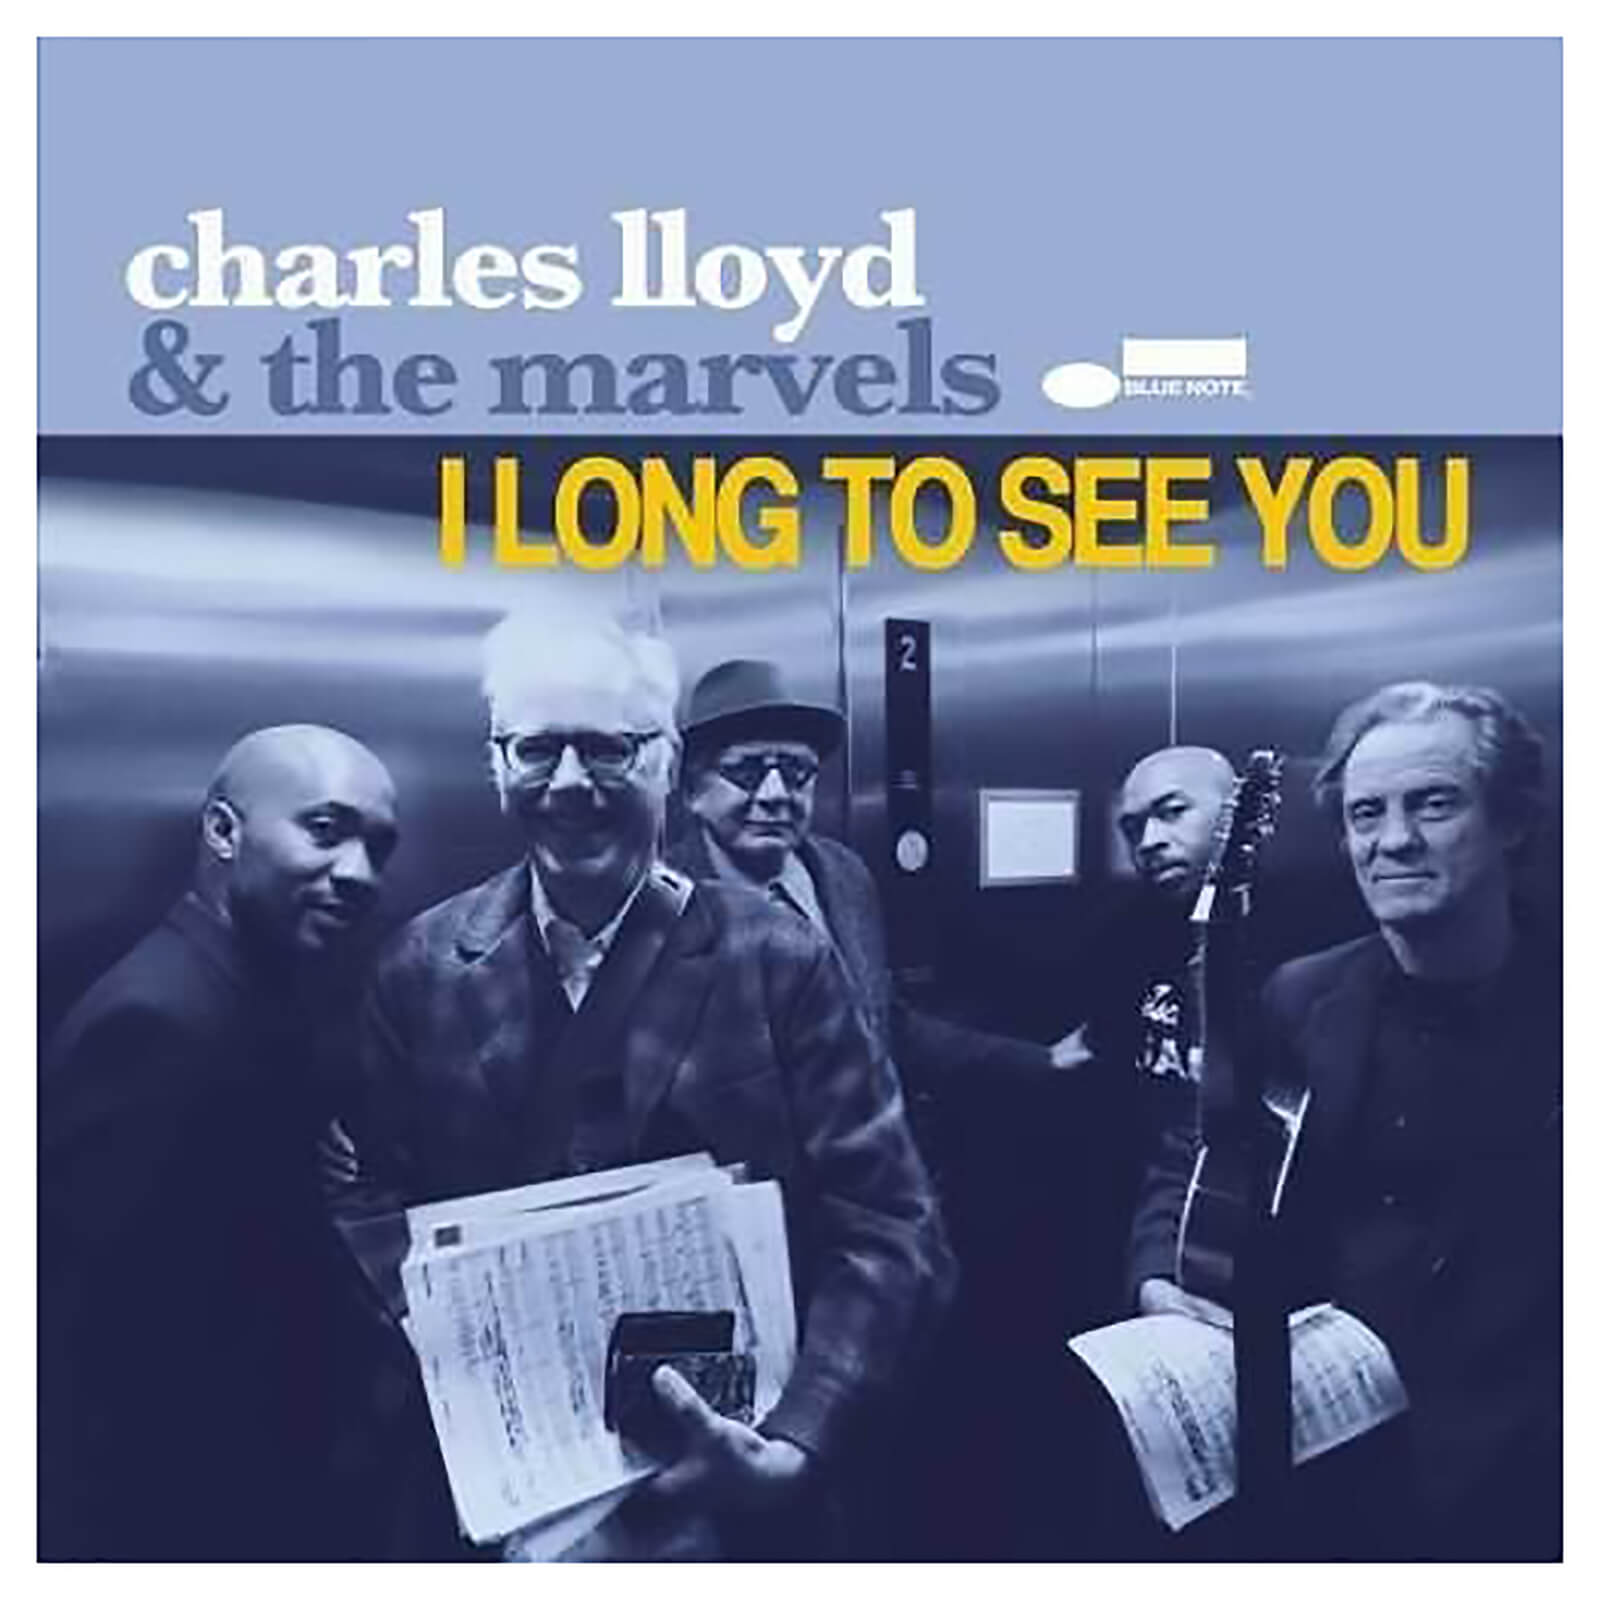 Charles Lloyd & The Marvels - I Long To See You - Vinyl